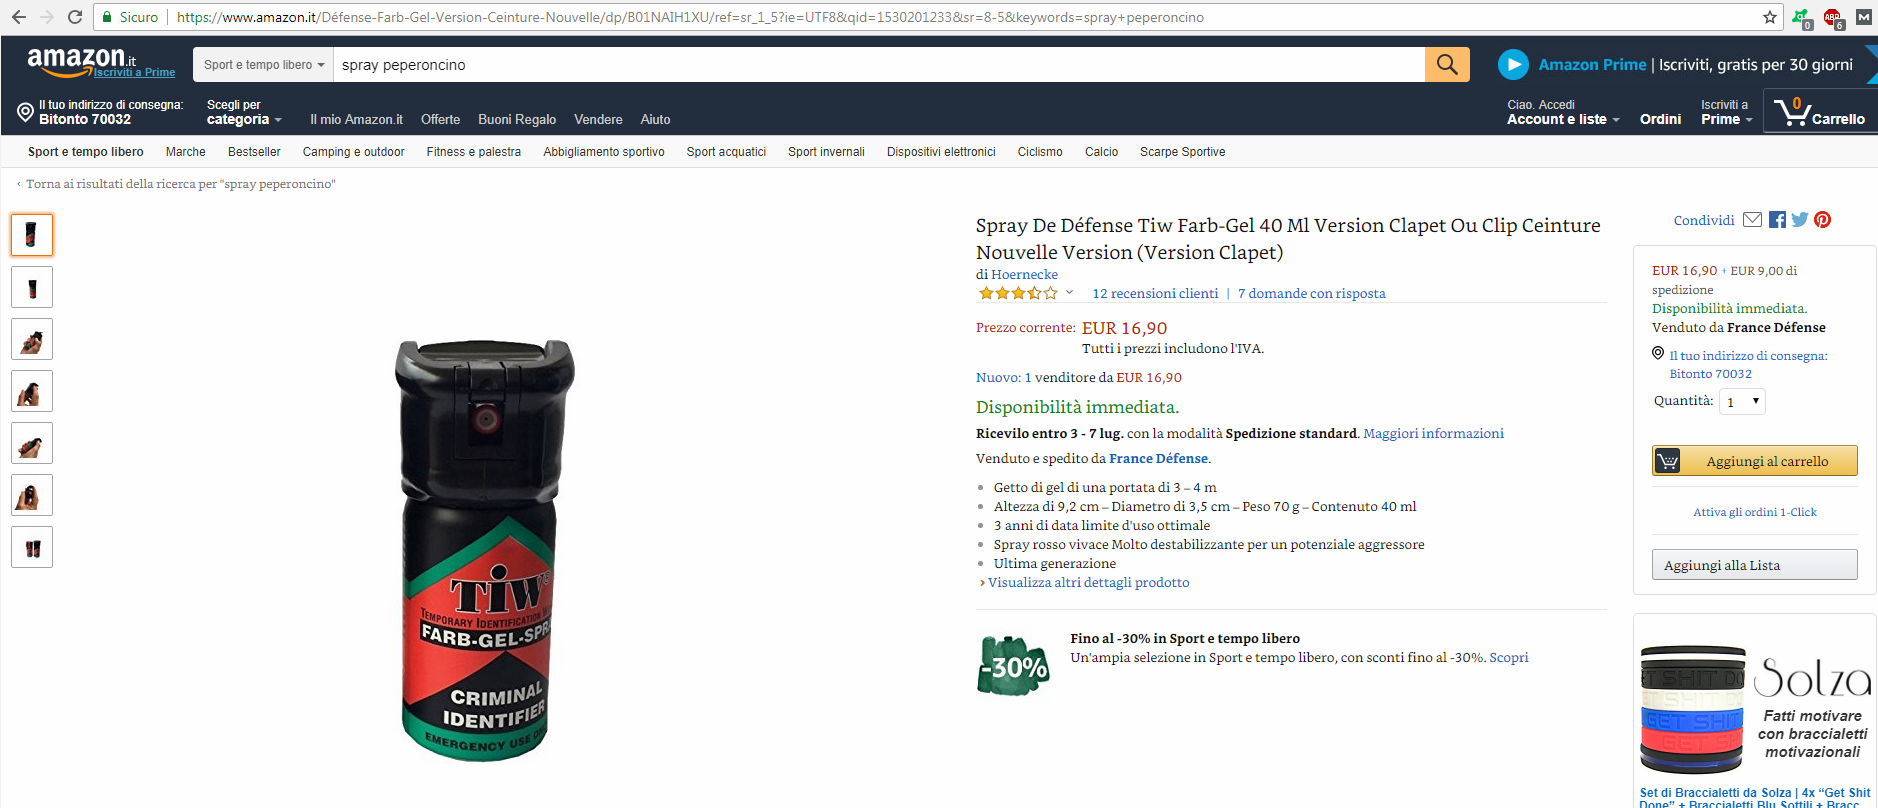 Spray antiaggressione venduti su Amazon